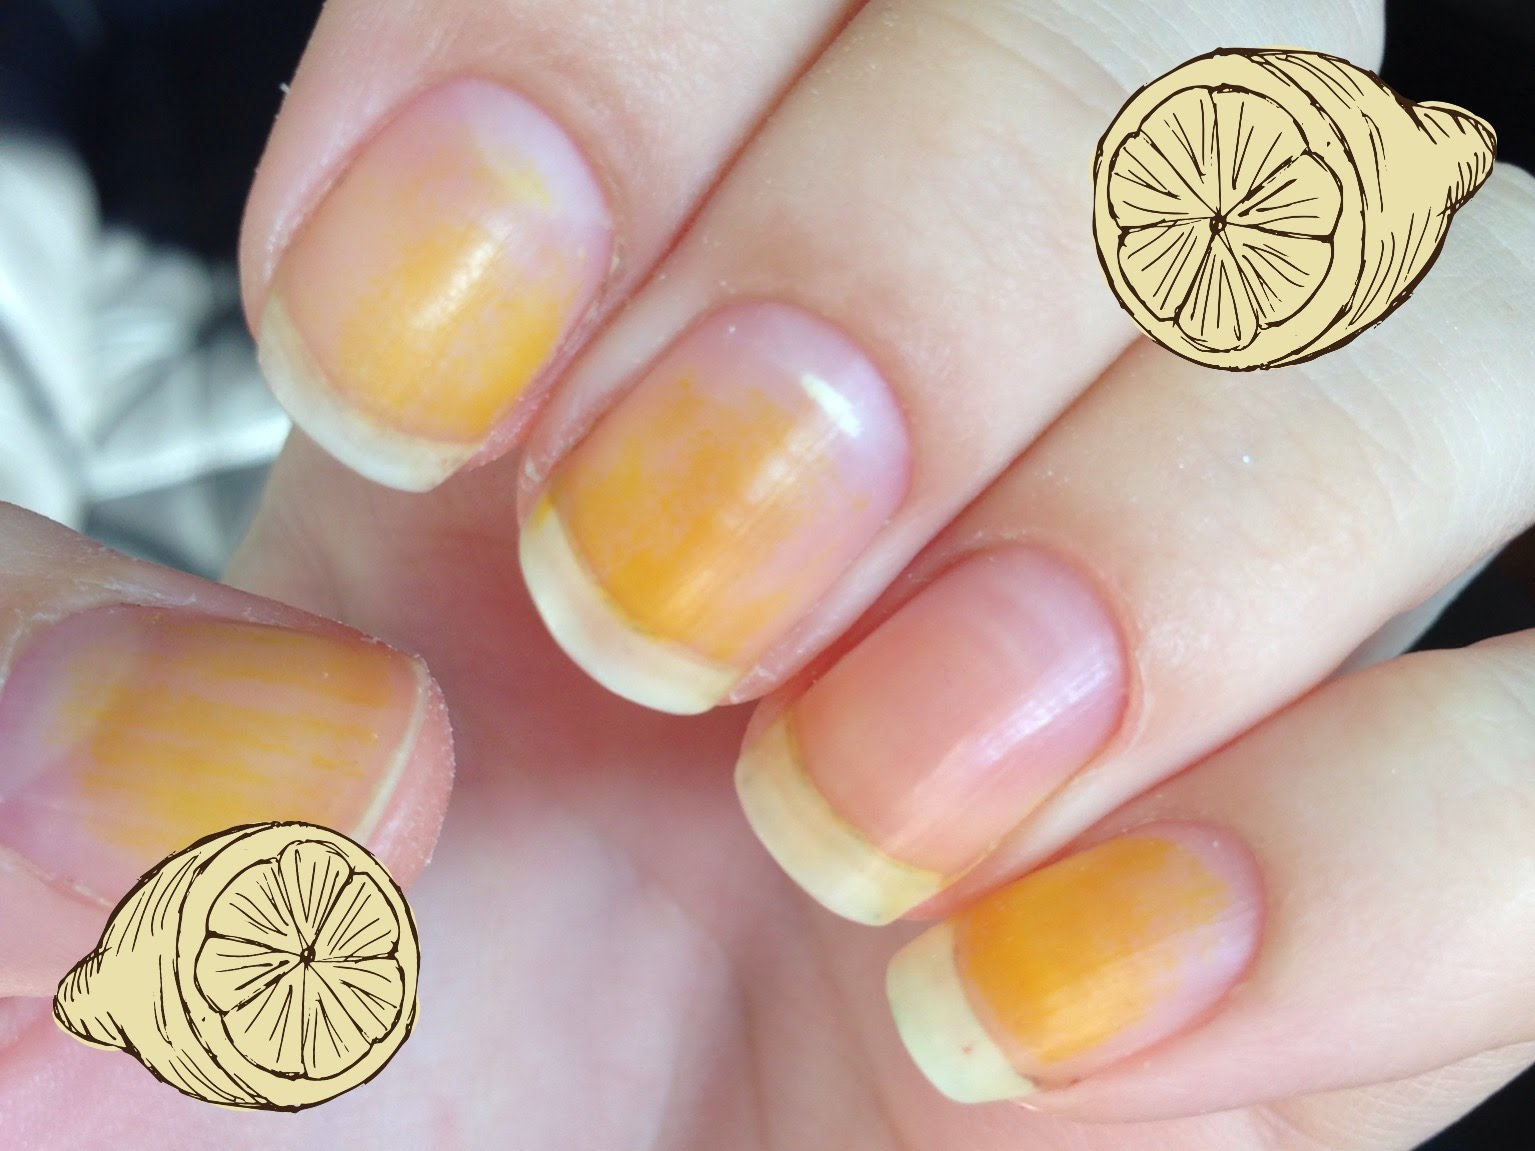 Beauty Tips: How to Get Rid of Yellow Nails in an Easy Way